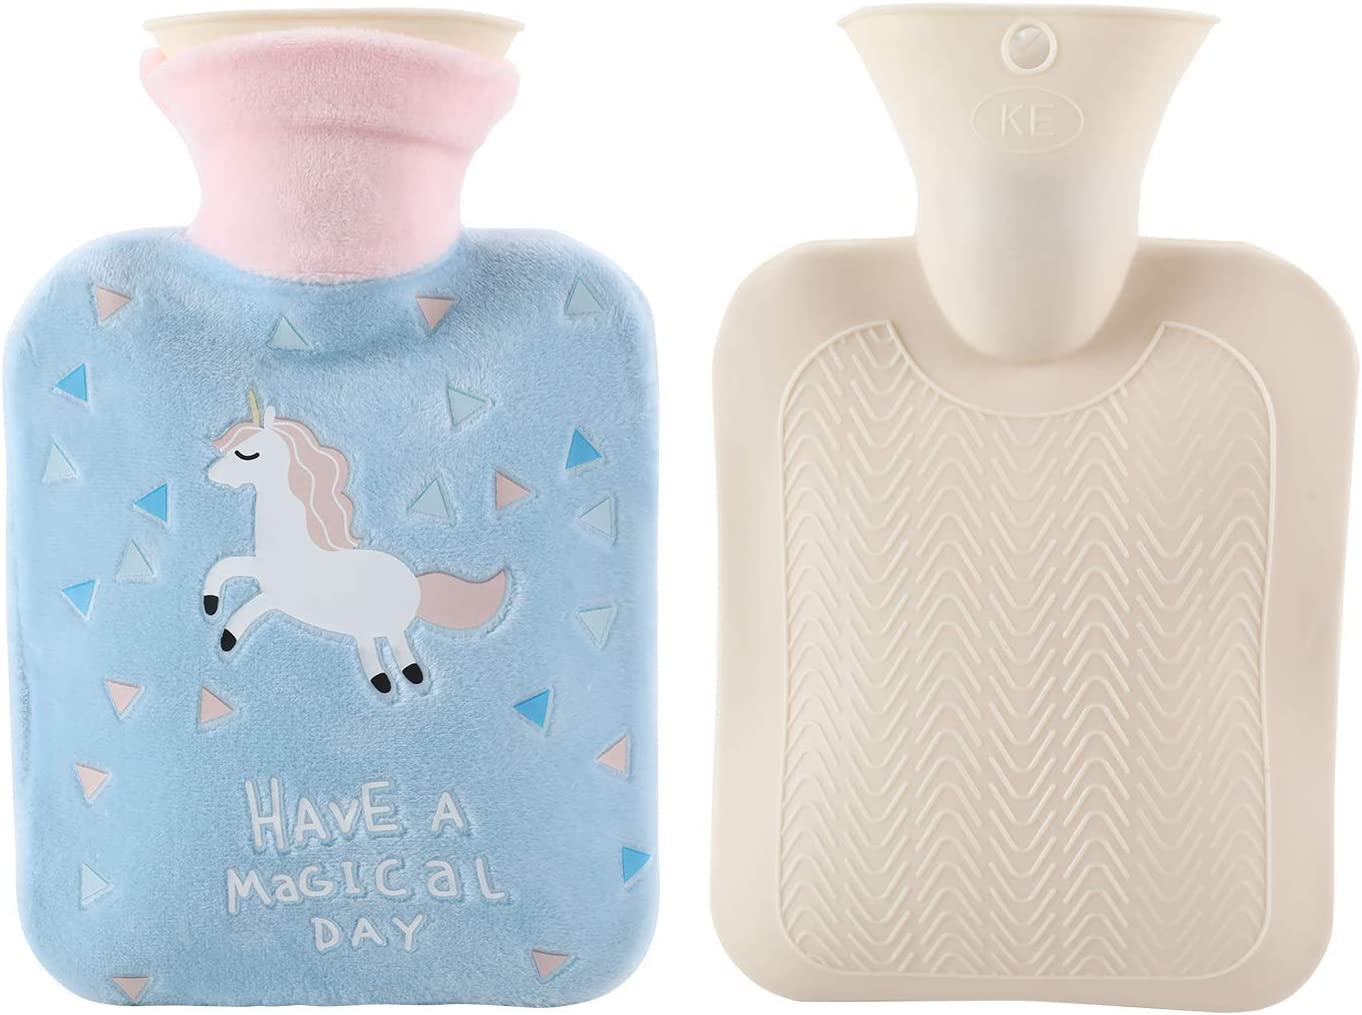 Premium Rubber Hot Water Bottle Unicorn Gifts Bag with Plush Cover Durable Blue